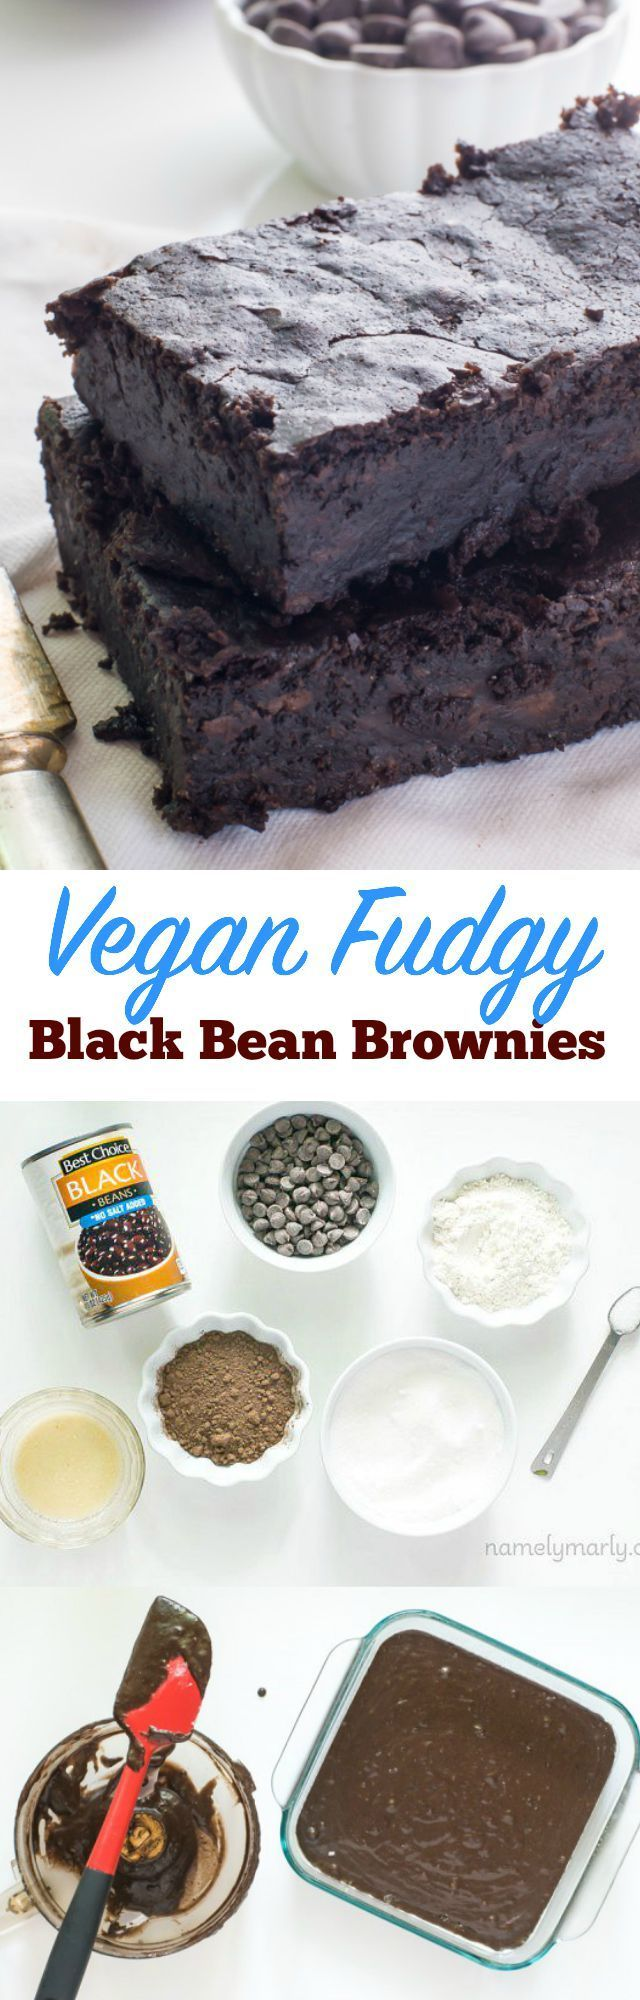 Get your fiber, stay healthy, keep it simple, and make it tasty - all in one brownie! Vegan Fudgy Black Bean Brownies!